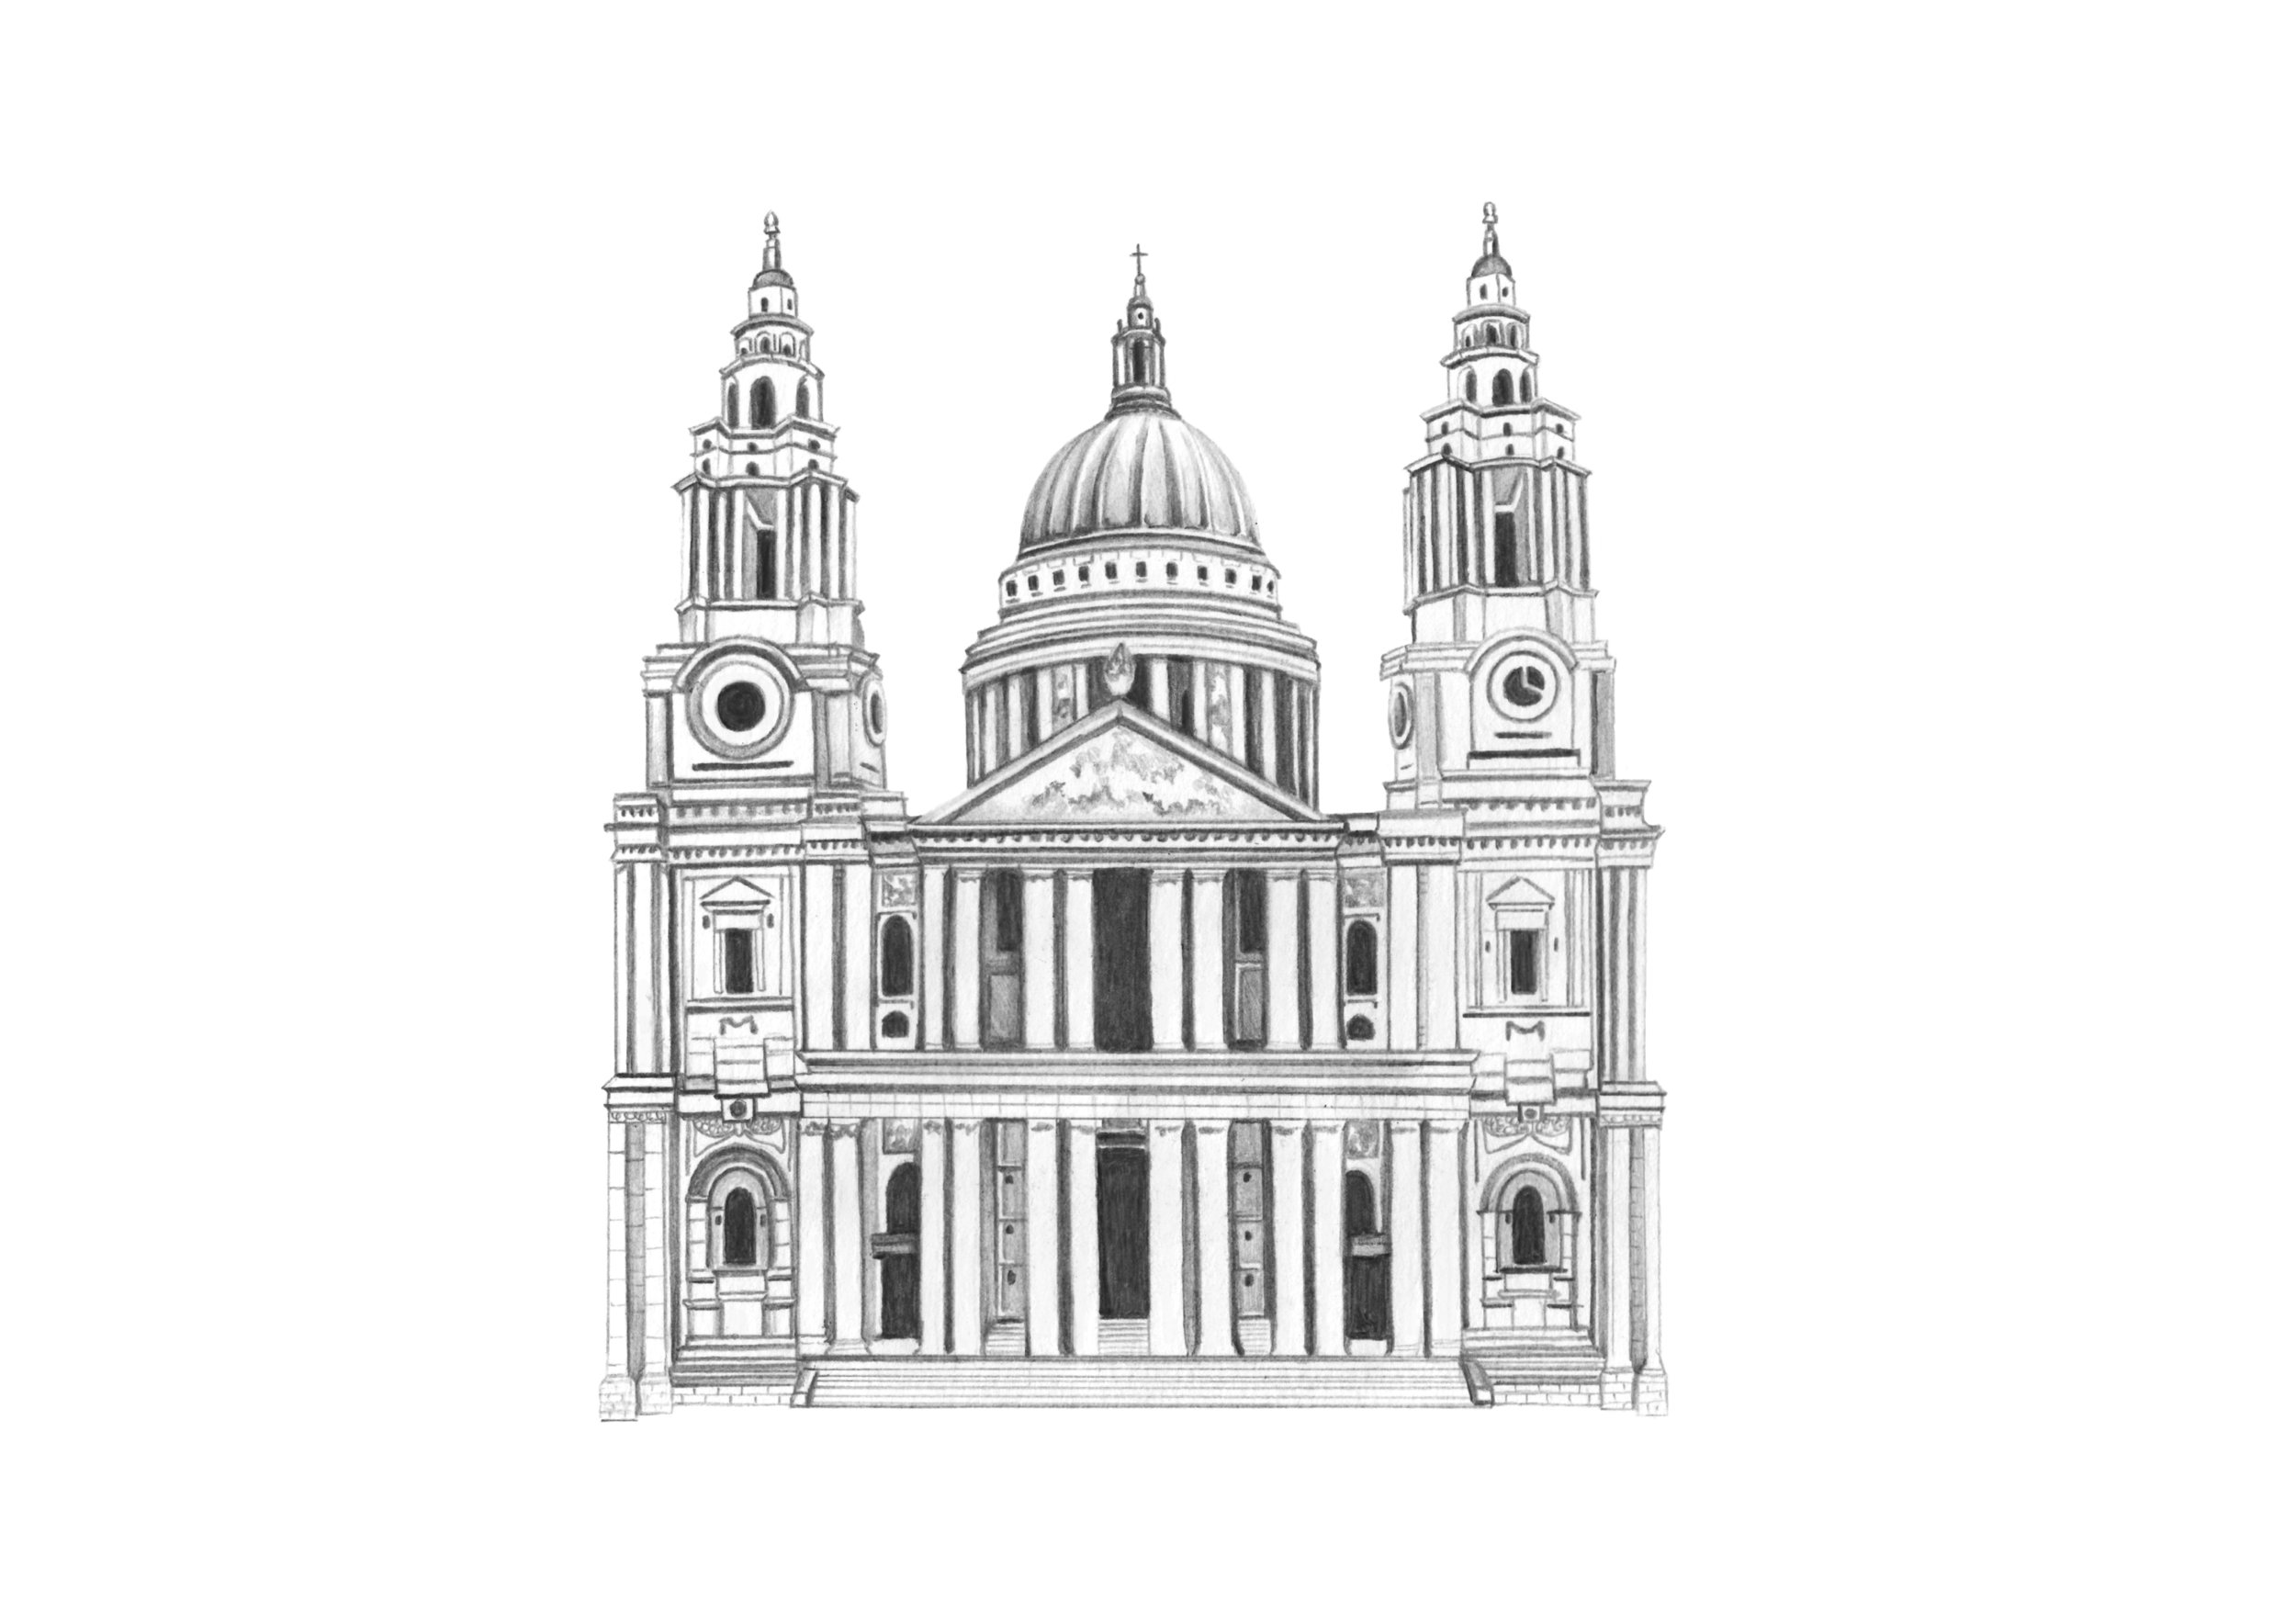 st paul's cathedral.jpg